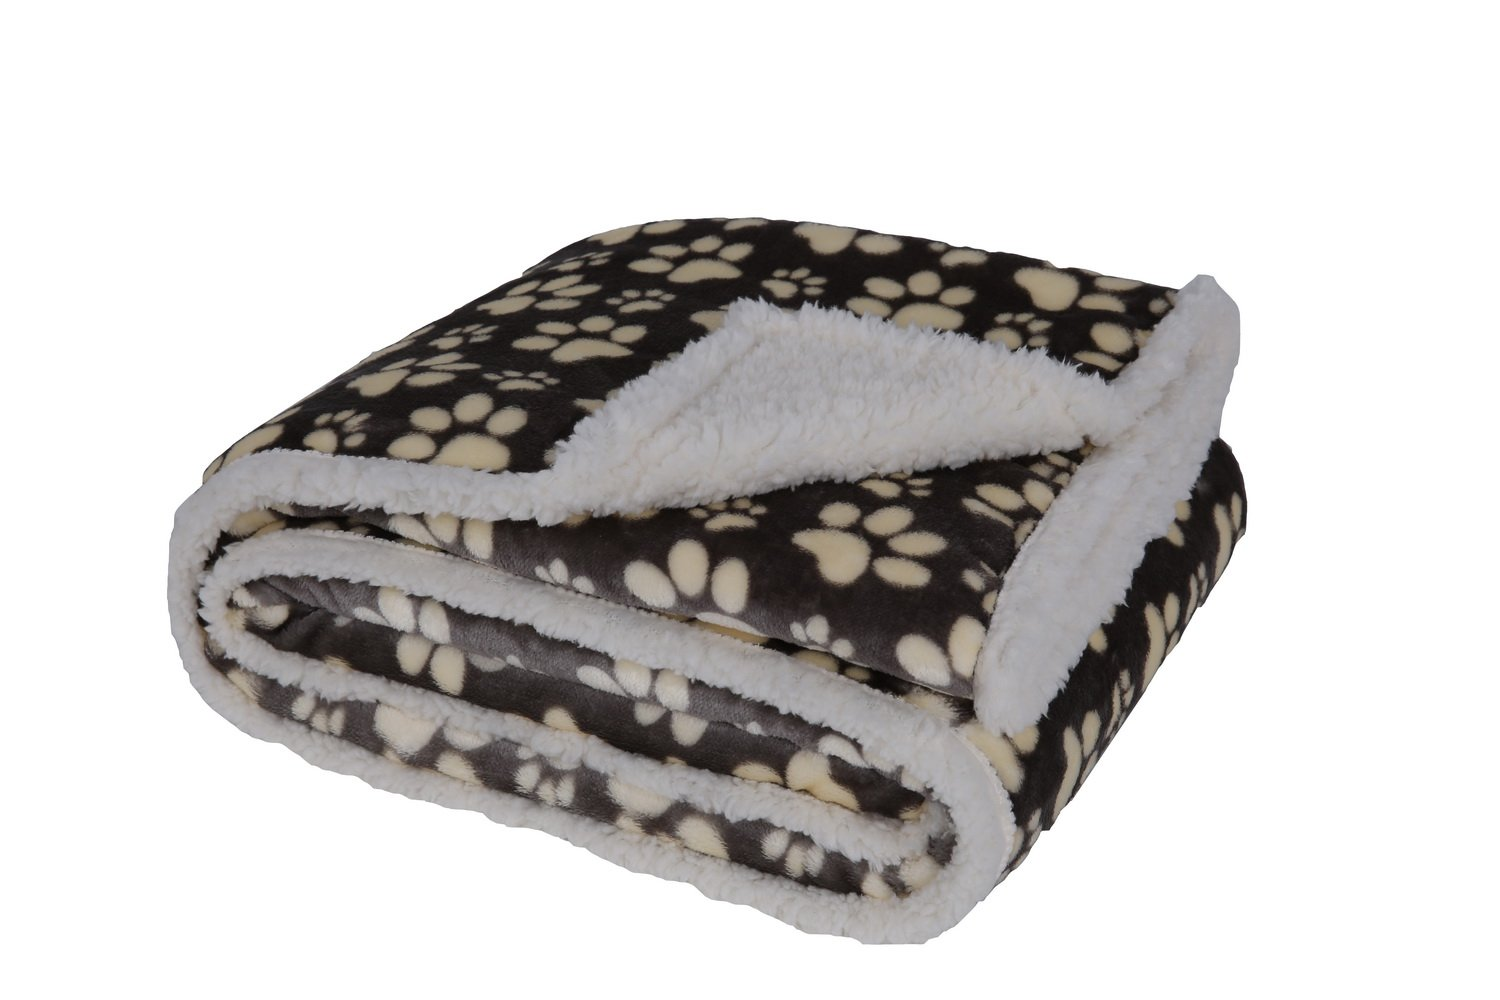 HappyCare Textiles 047393528902 Printed dog paw Flannel reverse to sherpa throw blanket, Gray